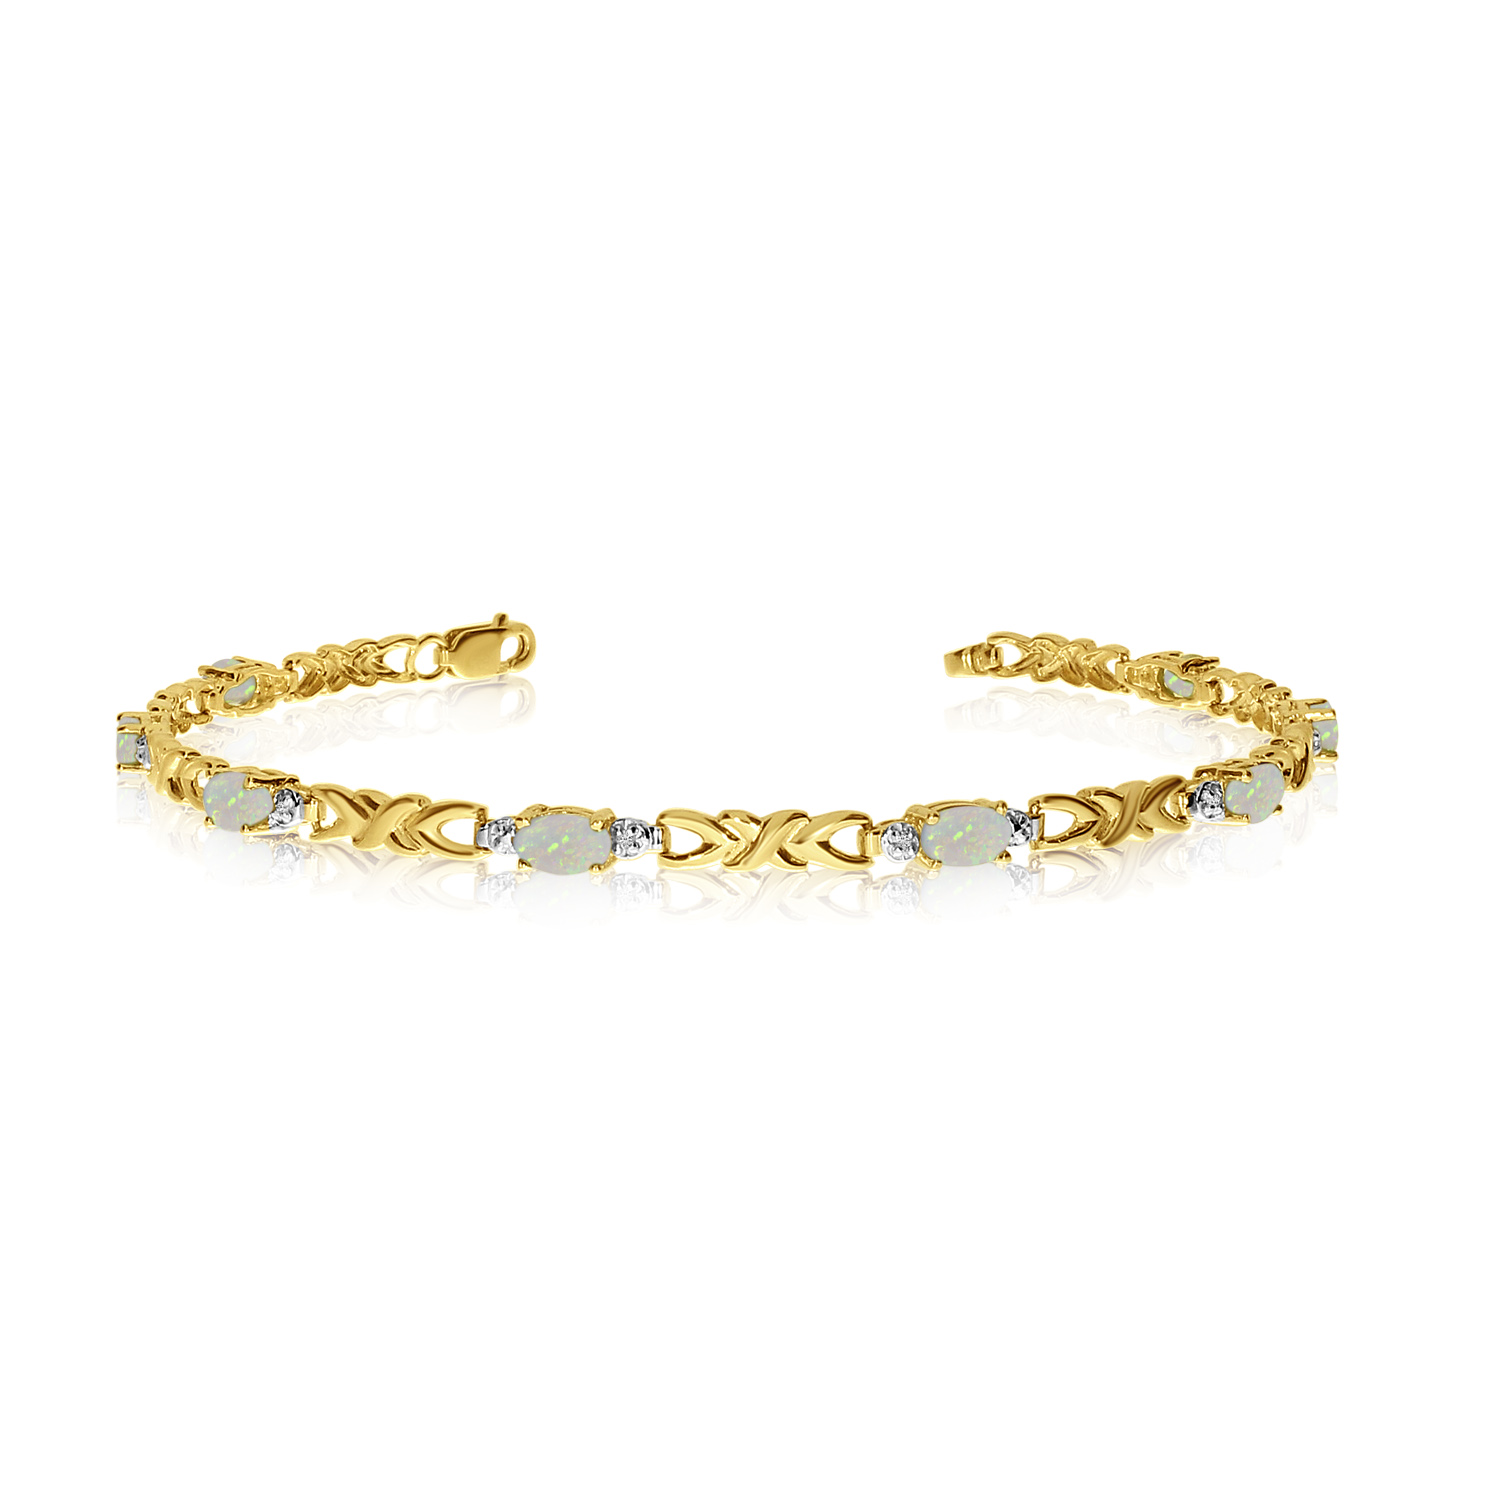 14K Yellow Gold Oval Opal and Diamond Bracelet by